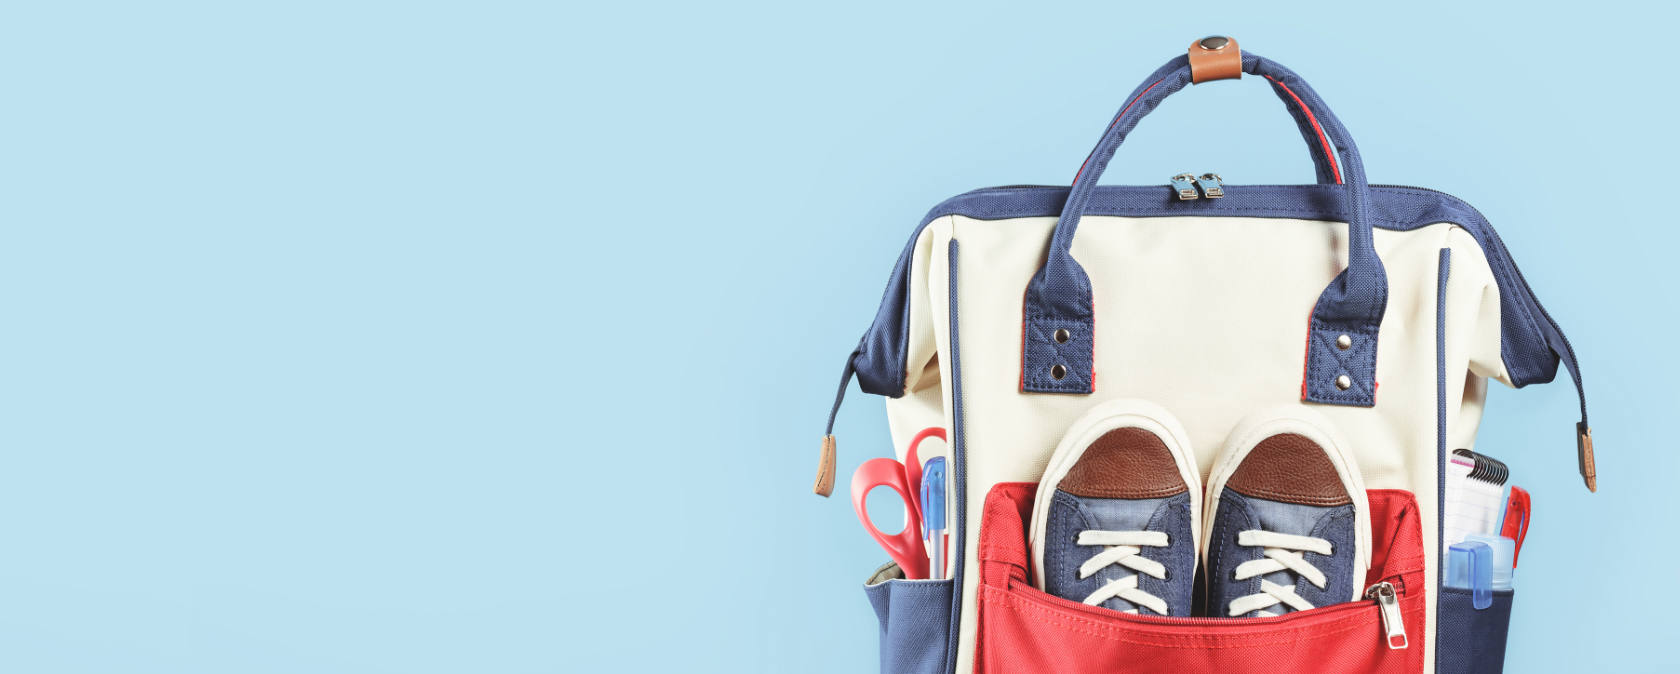 A red, white and blue schoolbag